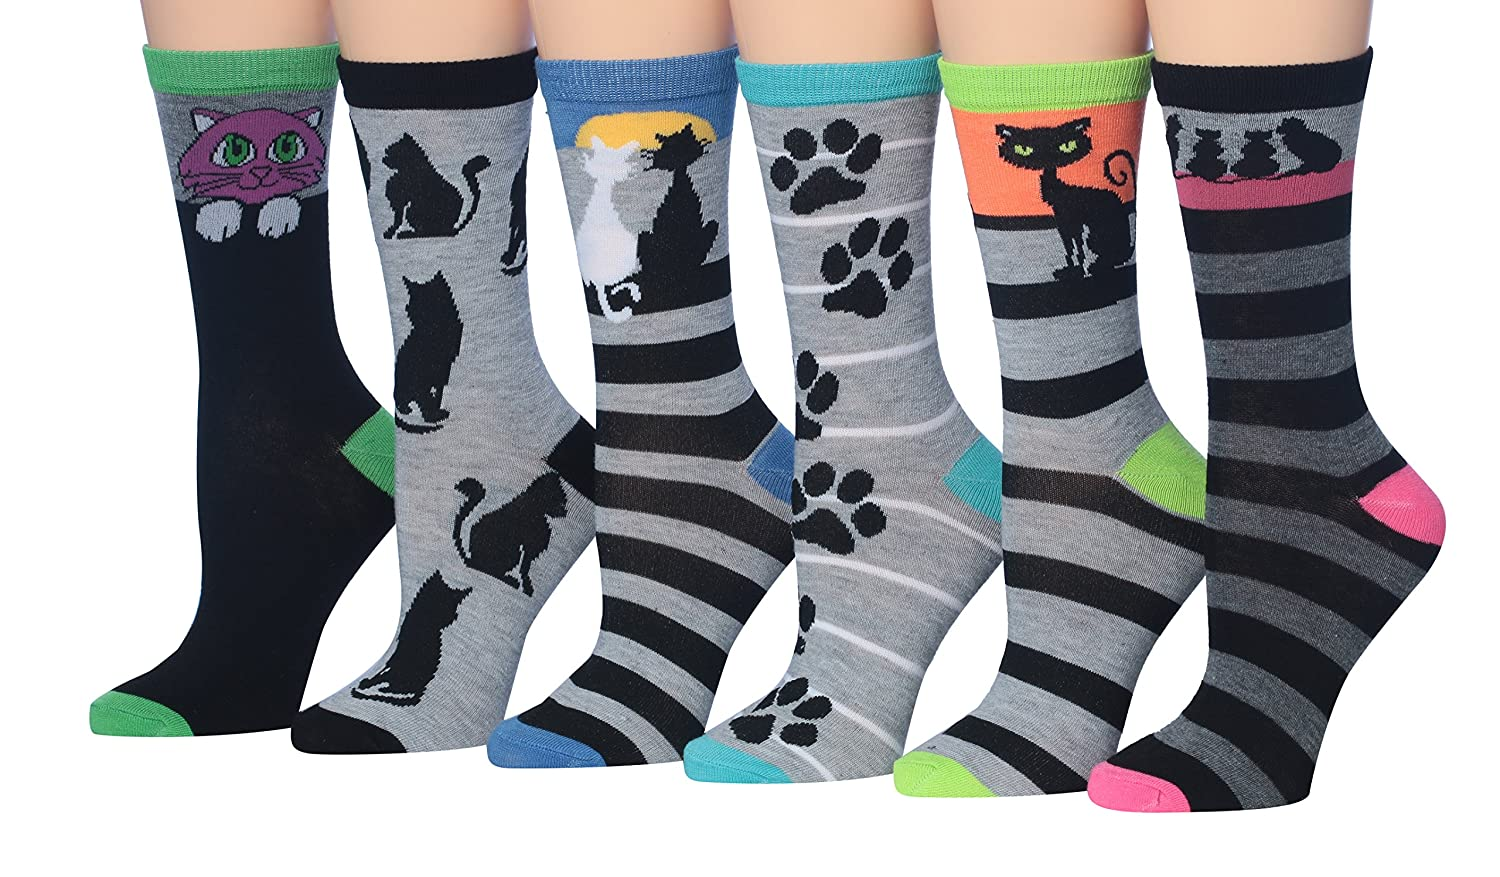 Tipi Toe Women's Fashion Novelty Animal Characters Cartoon Cat Panda Penguin Crew Socks W51-AB